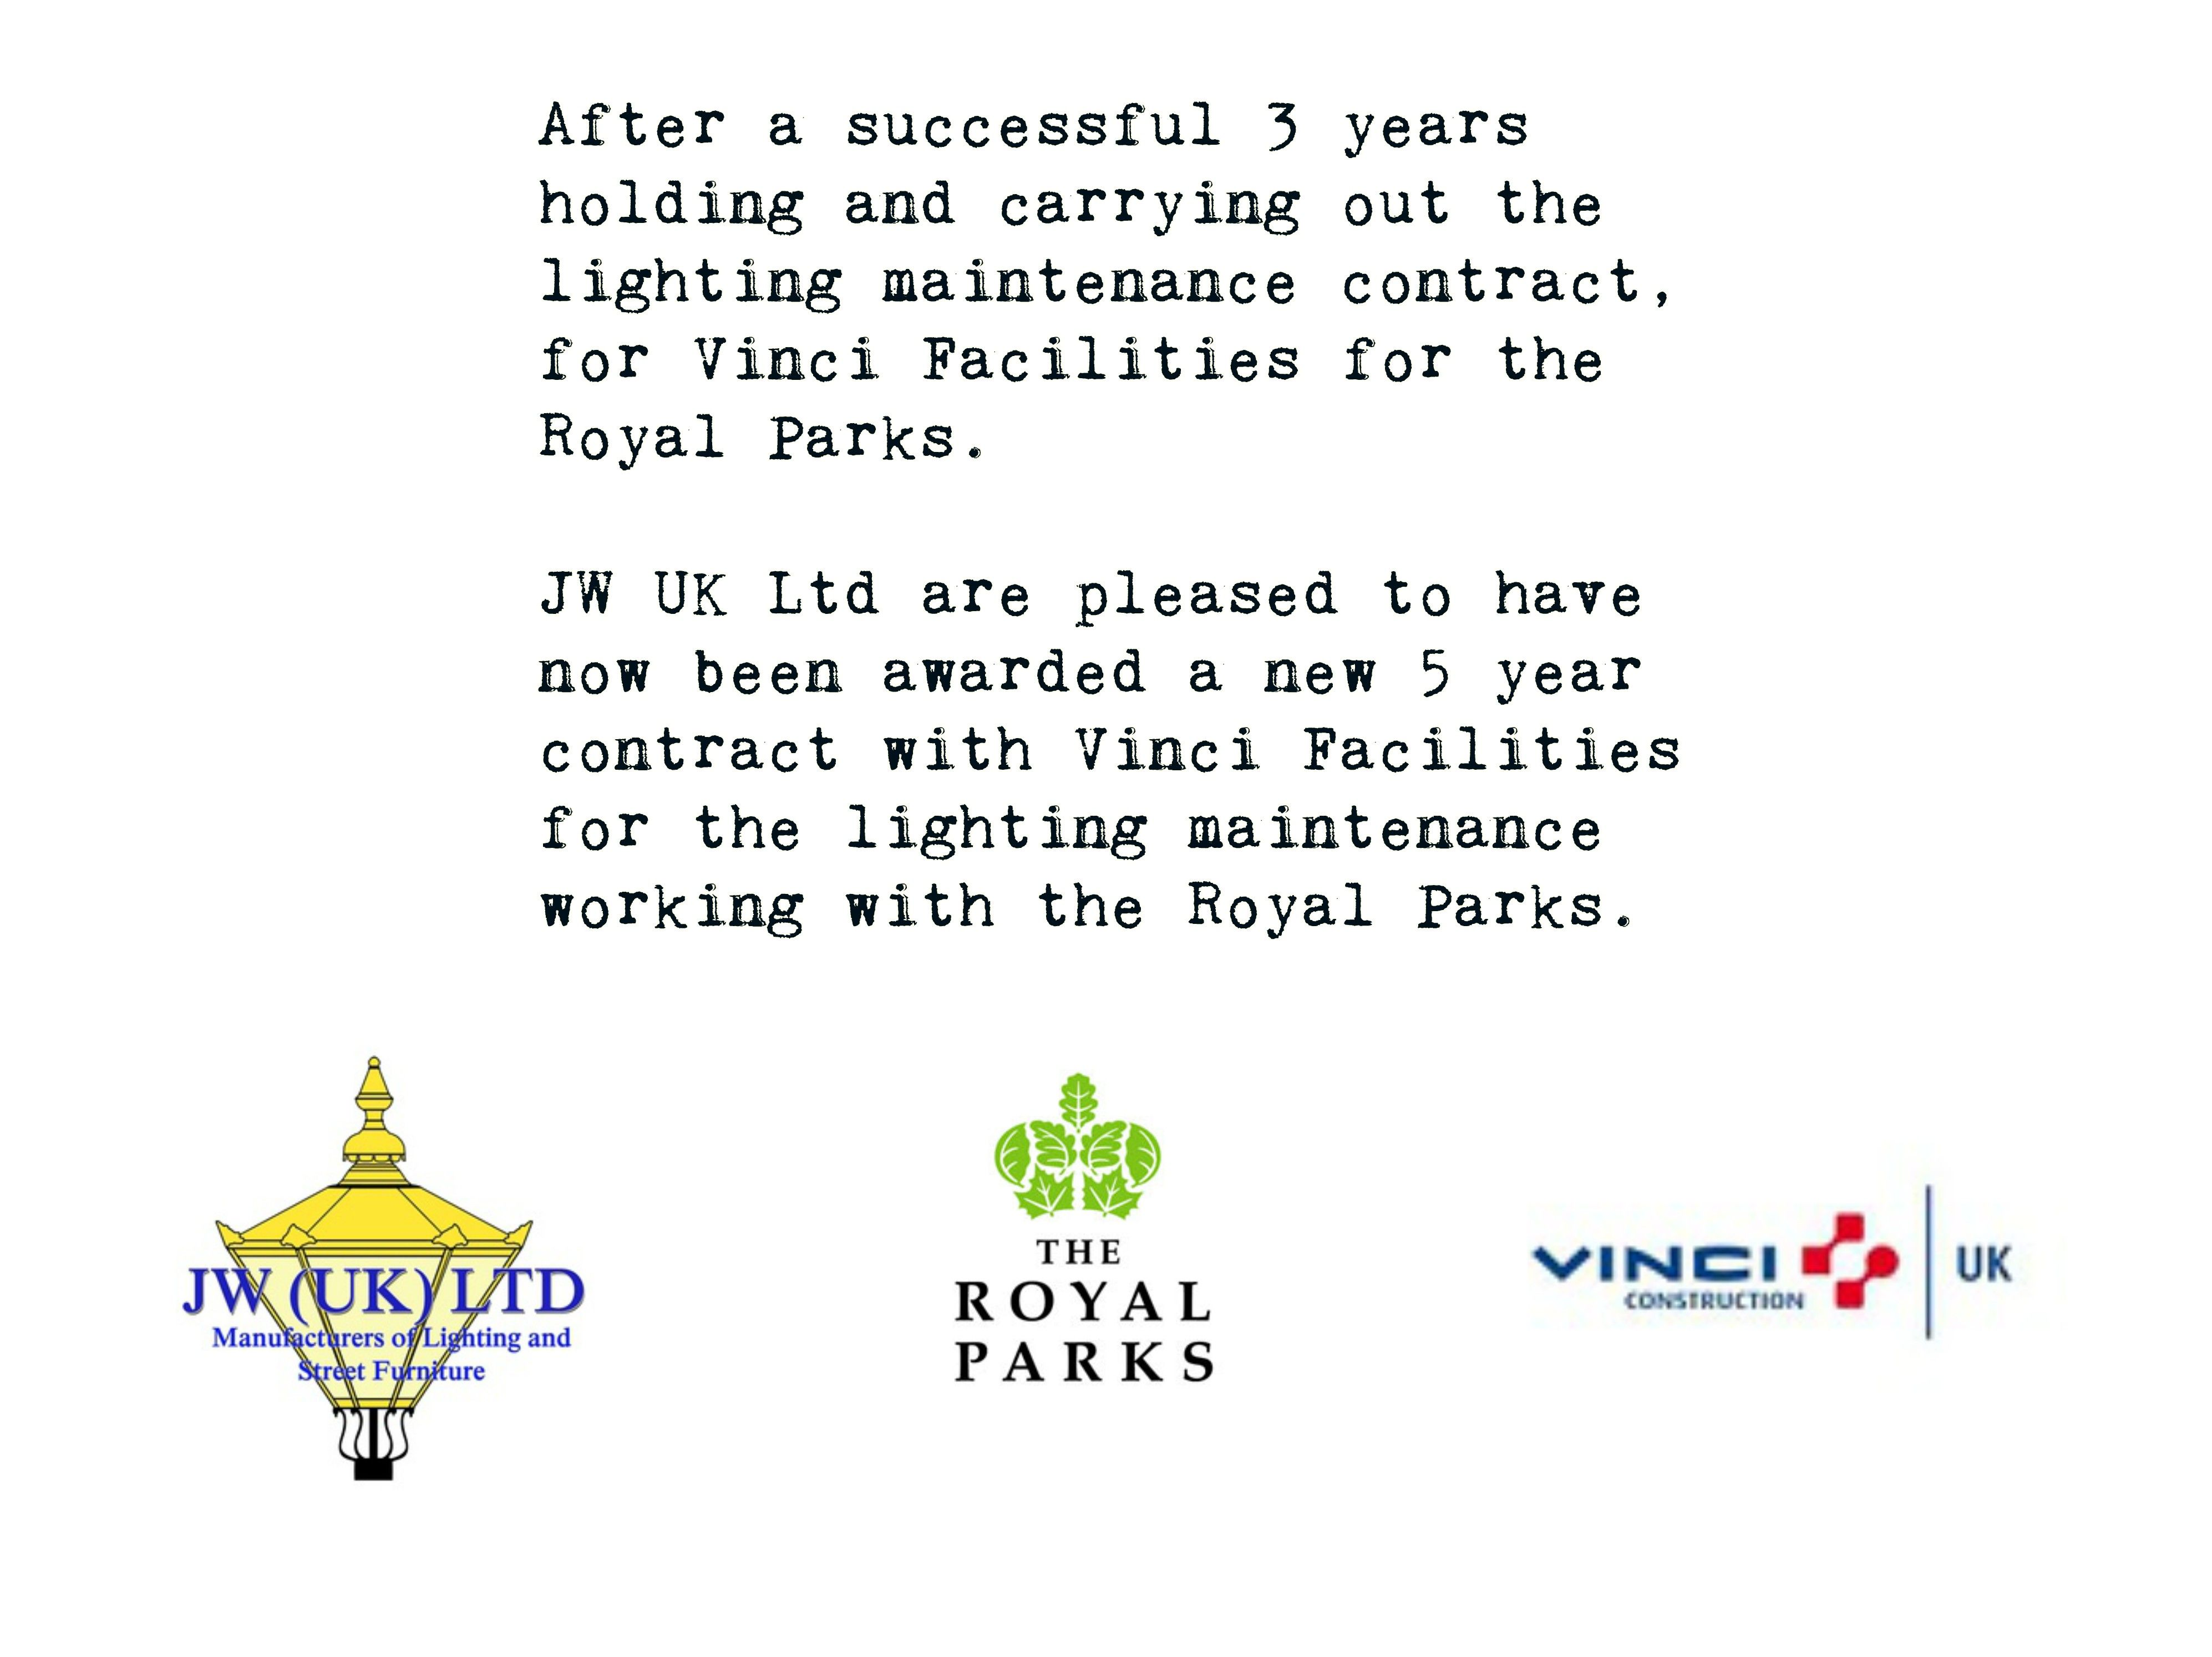 JW UK LTD are pleased in carrying out the lighting maintenance contract for Vinci Facilities for the Royal Parks.